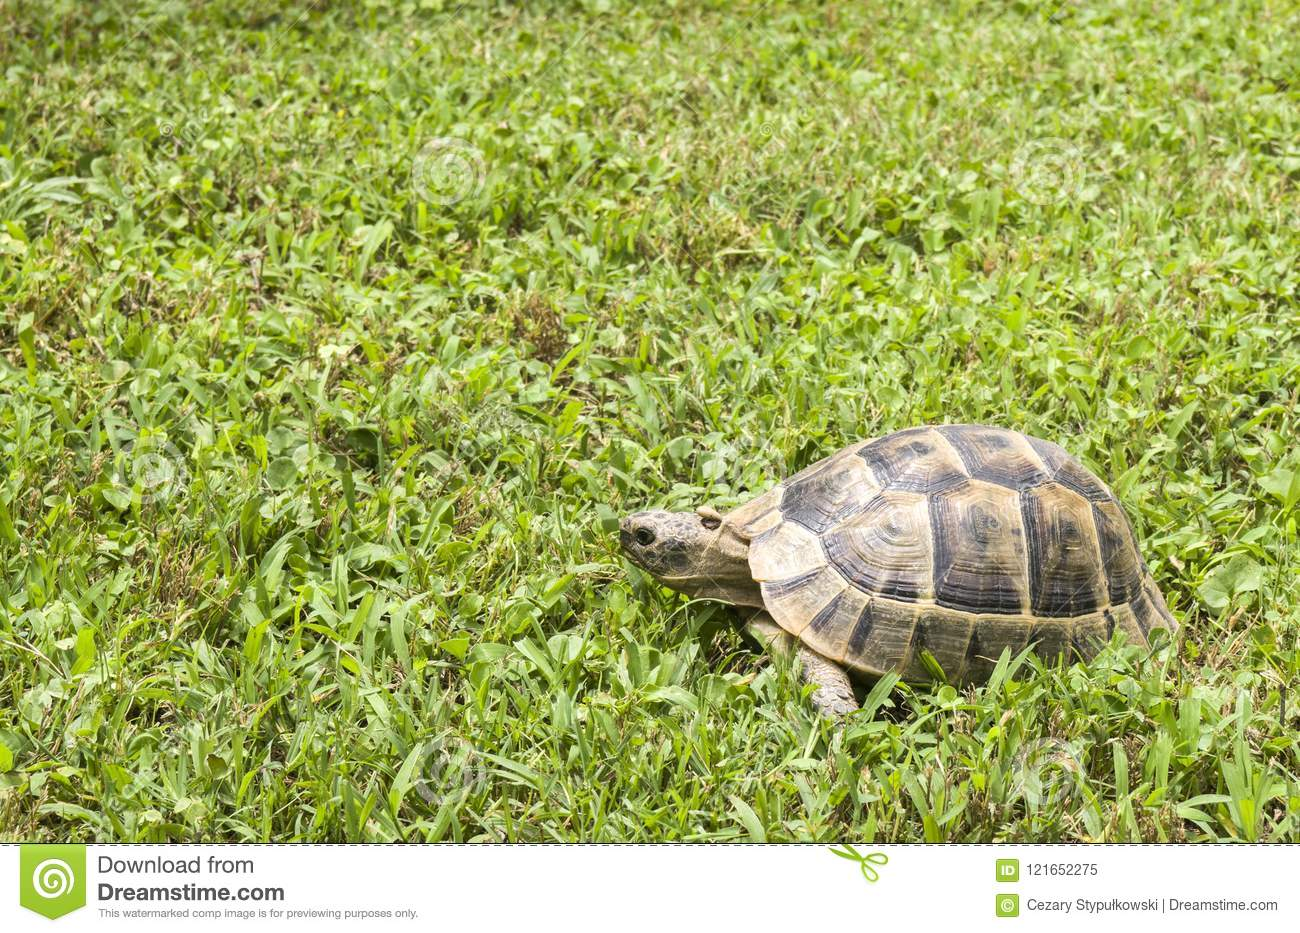 Turtle eating and walking on green grass